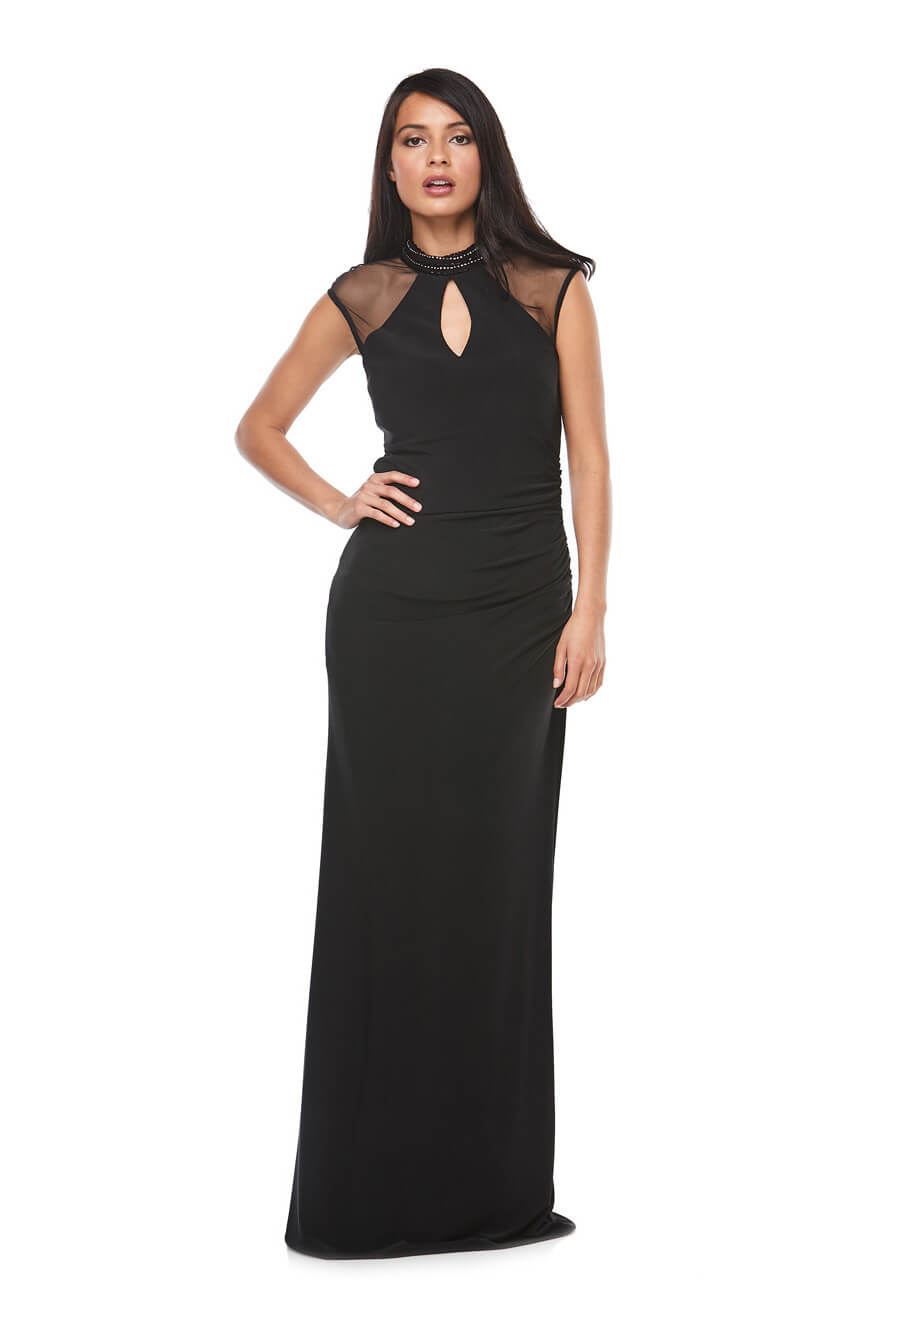 Long stretch jersey gown with sheer cap sleeves, keyhole detail & beaded neckline